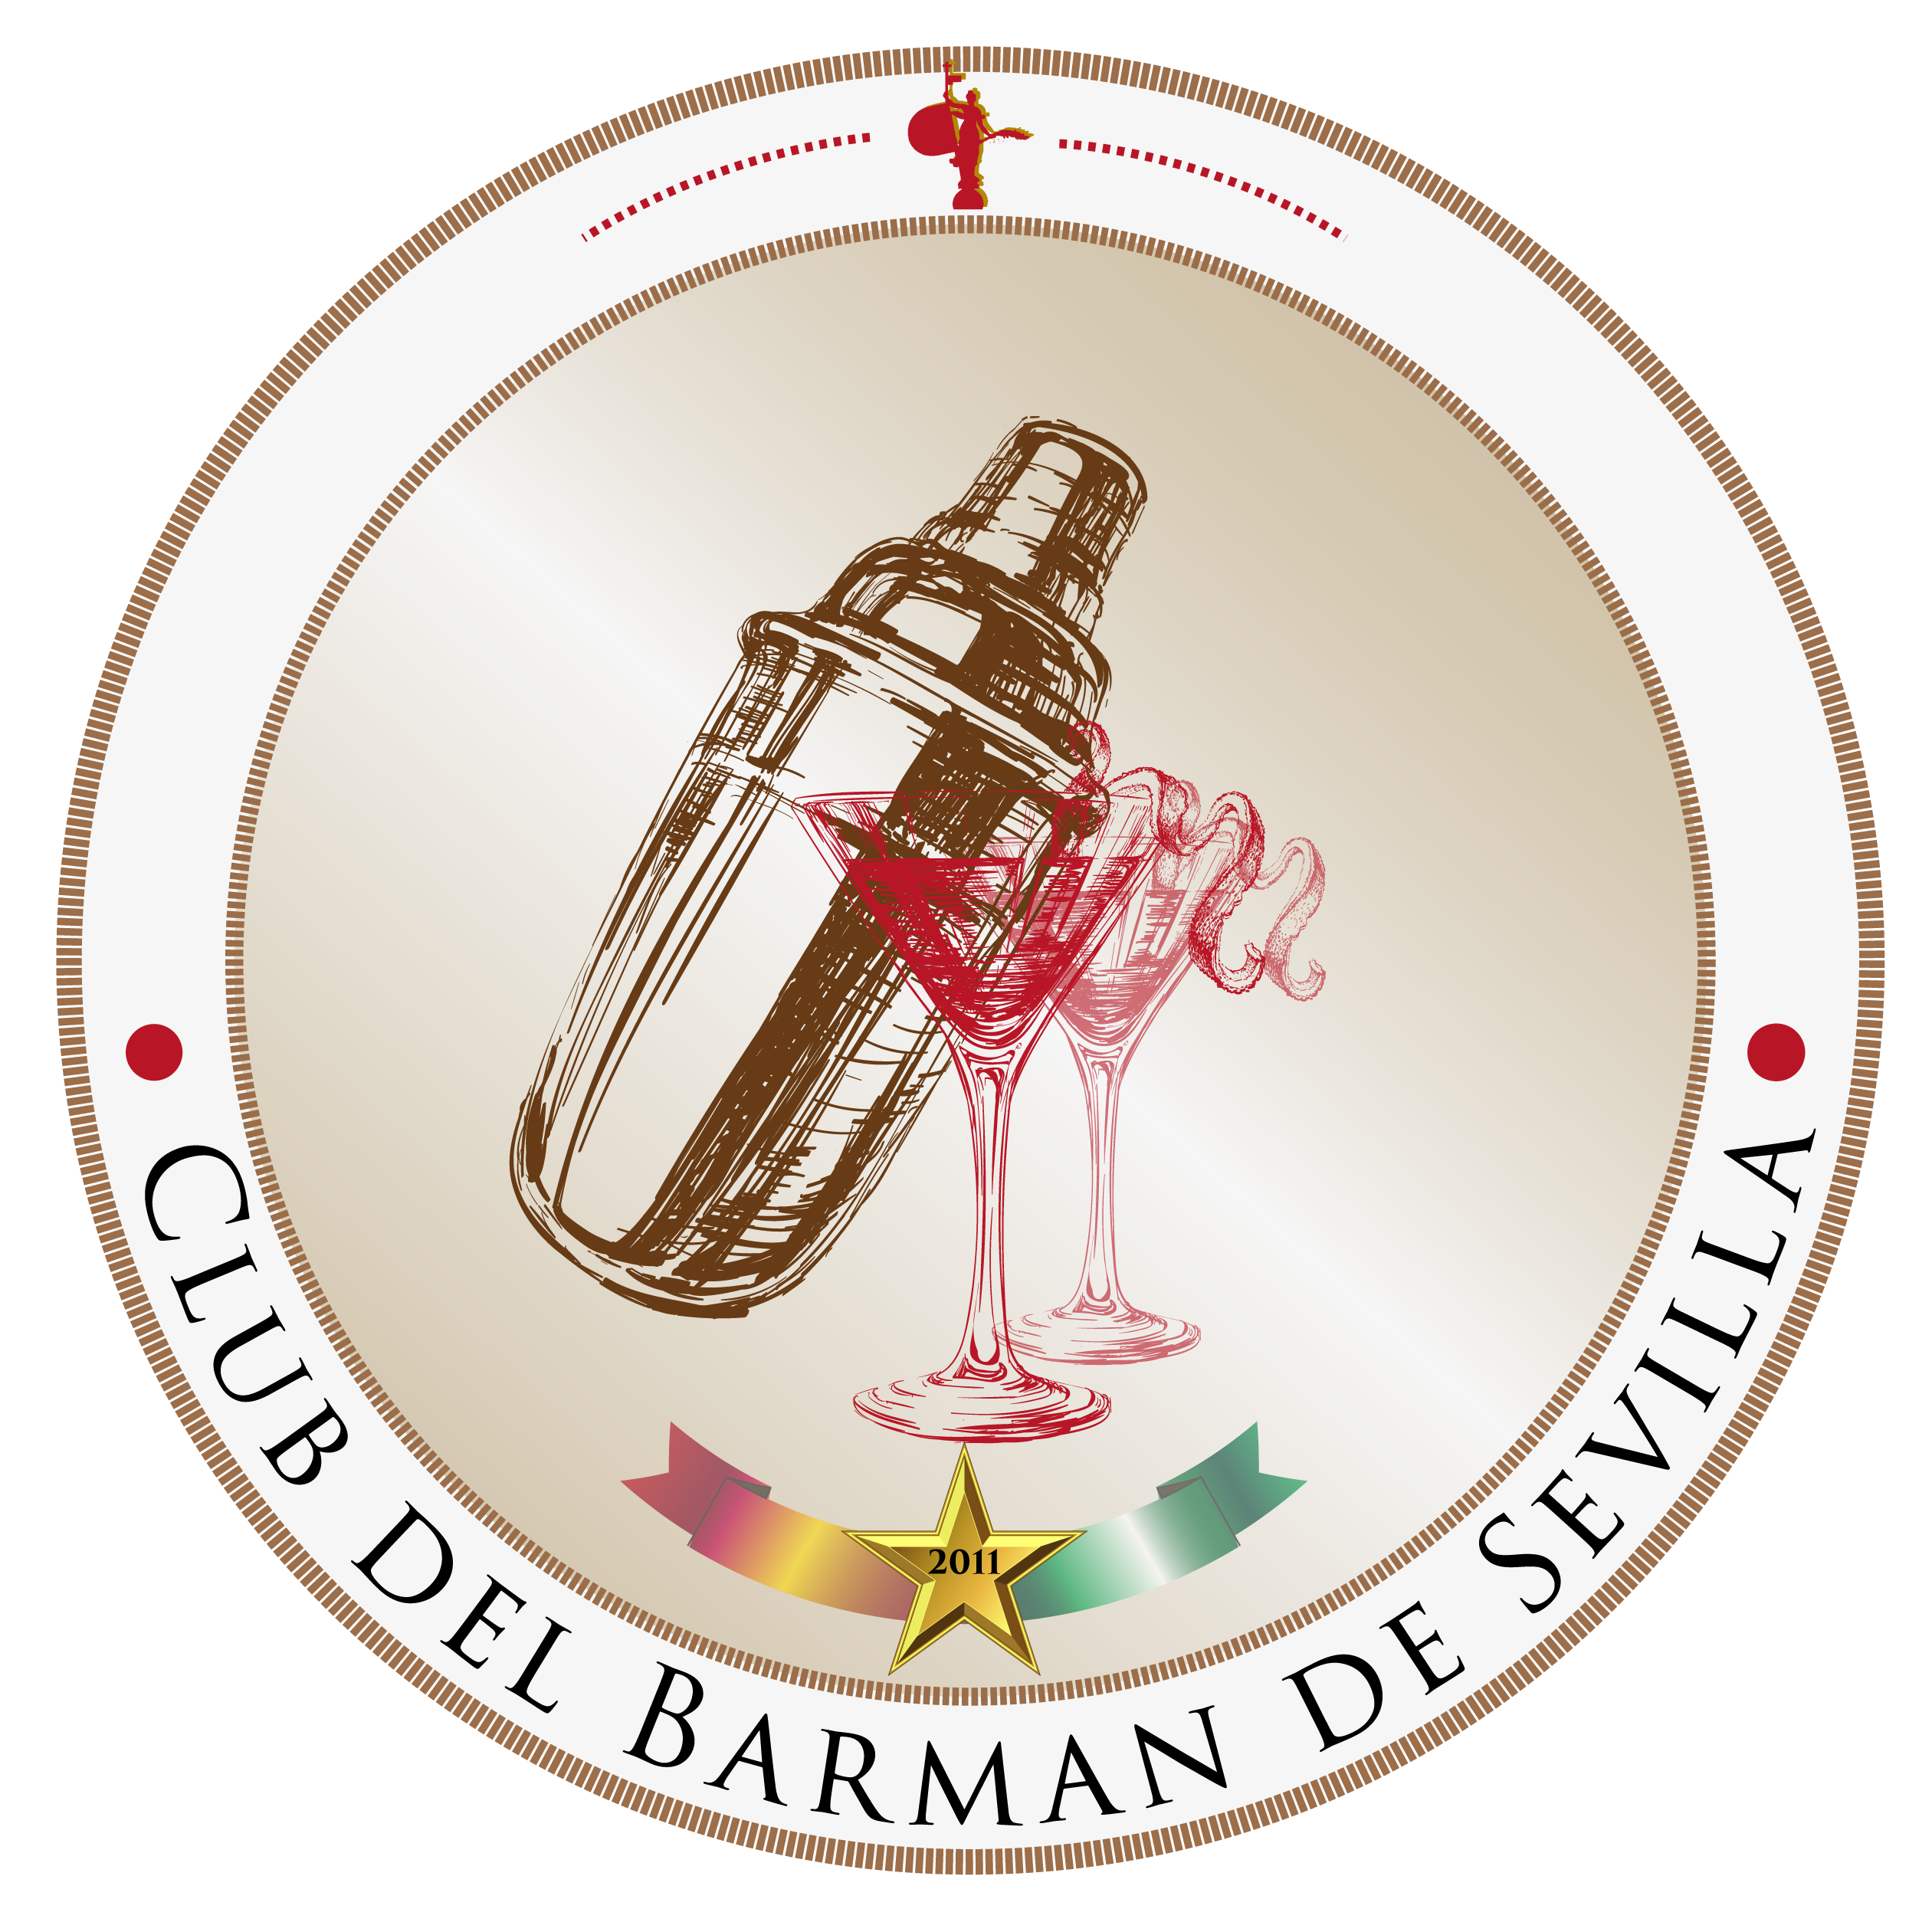 Club del Barman de Sevilla